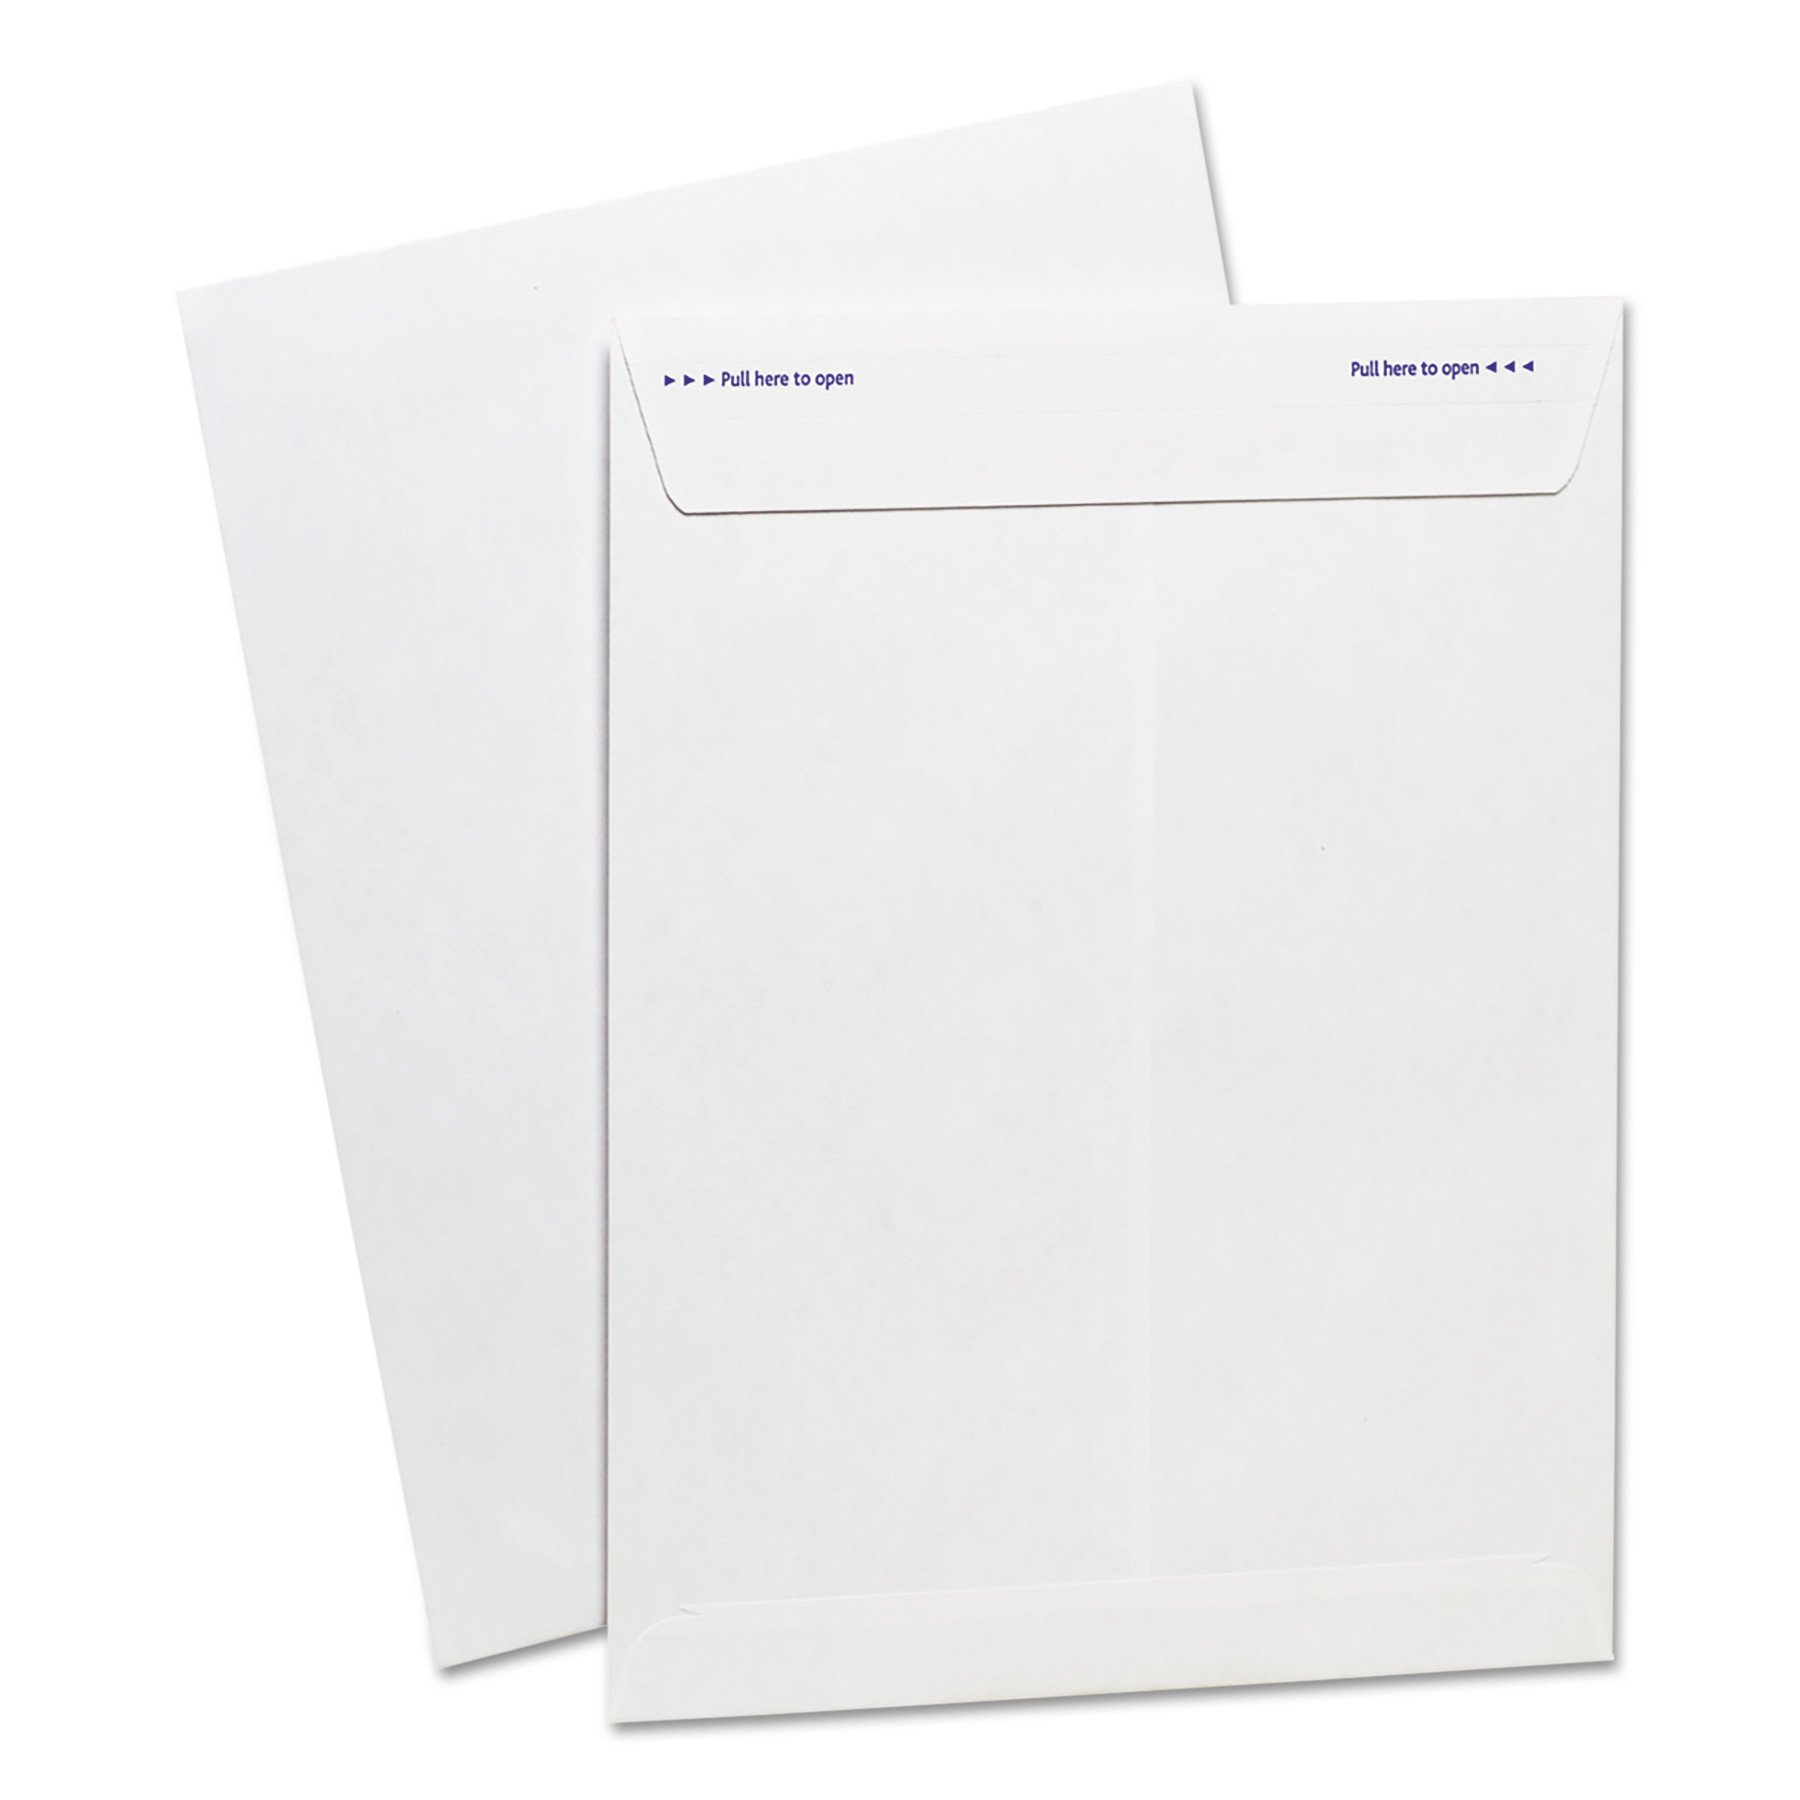 Ampad Fastrip Security Catalog Envelope, 9 Inch x 12 Inch, Peel & Seal Adhesive, Security Tint, Tear-Away Quick-Open Strip, White, 100 Per Box (73127)